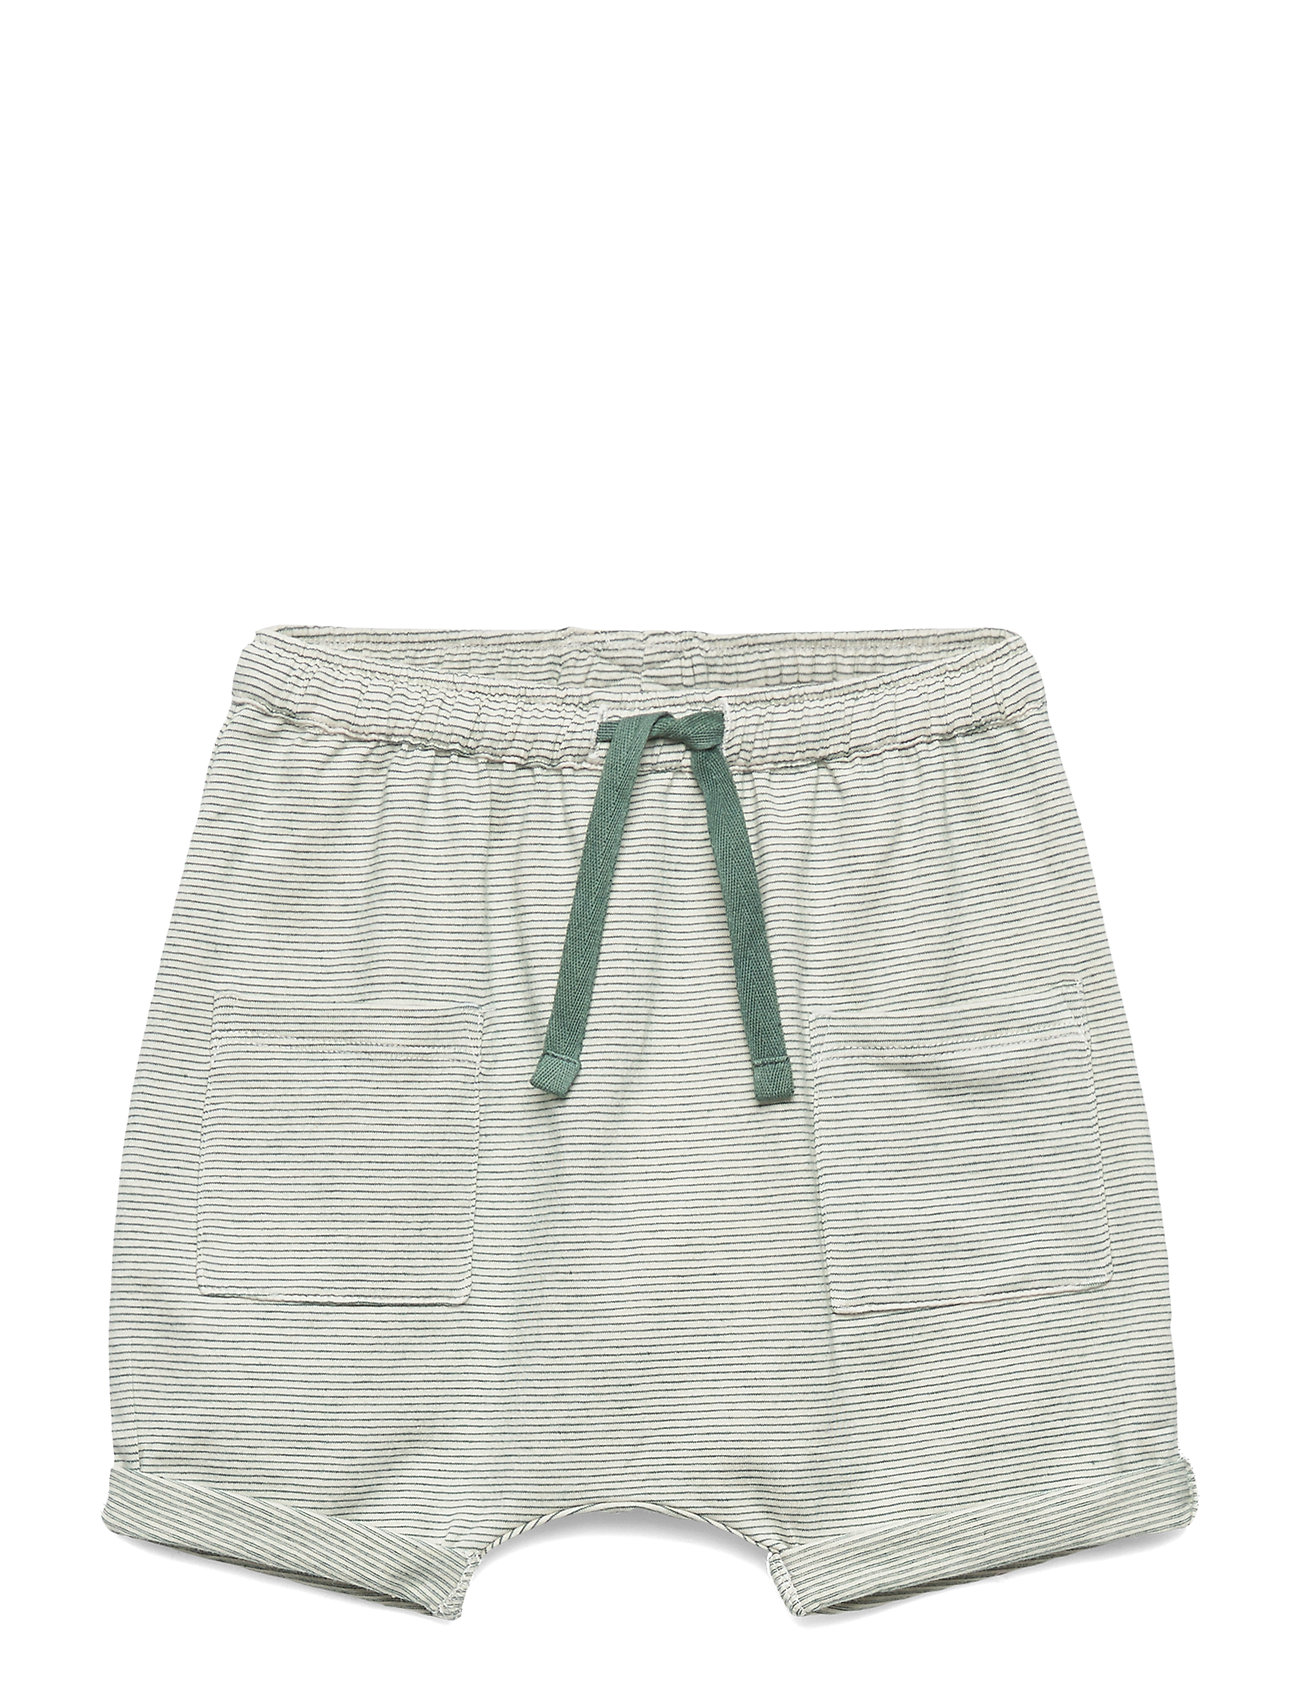 Soft Gallery Flair Shorts - HUNTER GREEN